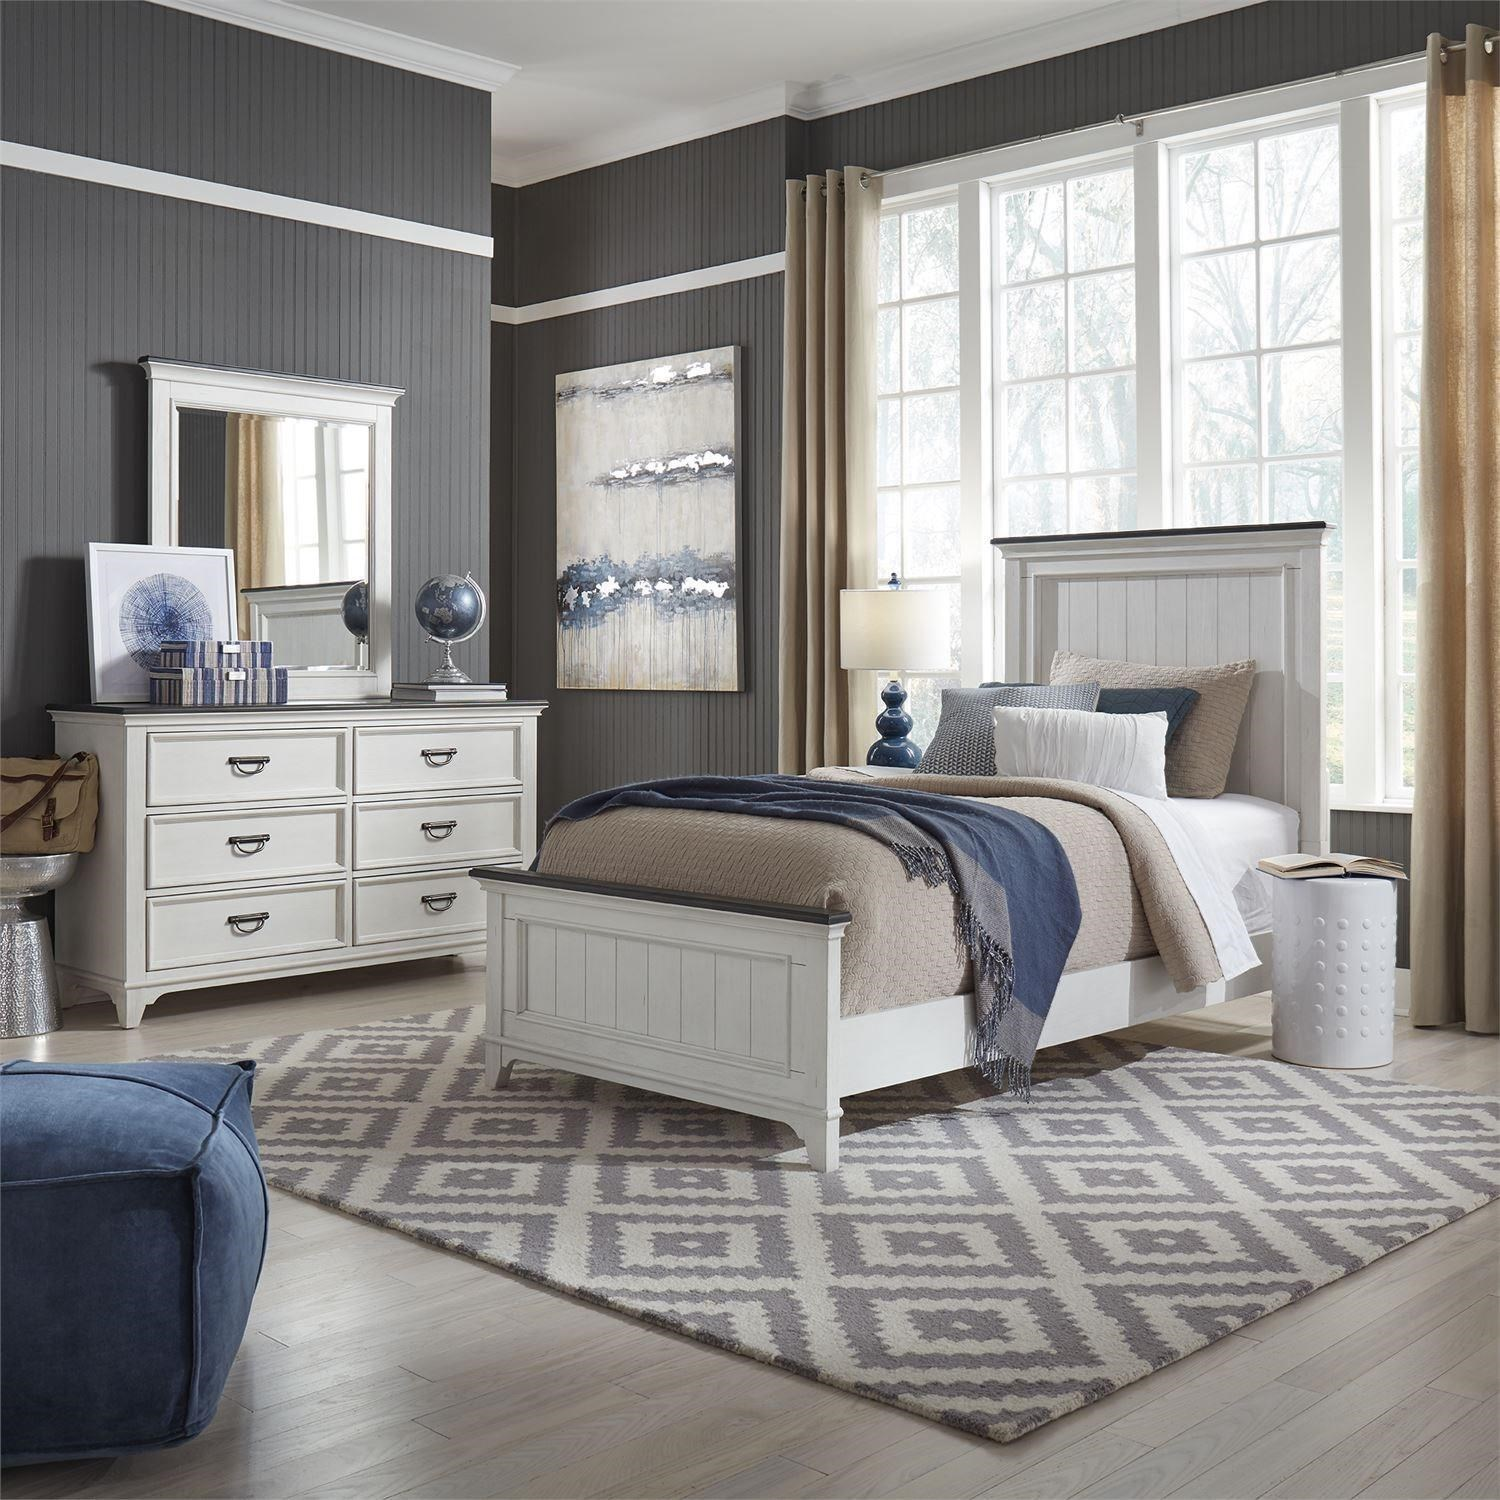 Allyson Park Twin Panel Bed, Dresser & Mirror by Liberty Furniture at Home Collections Furniture